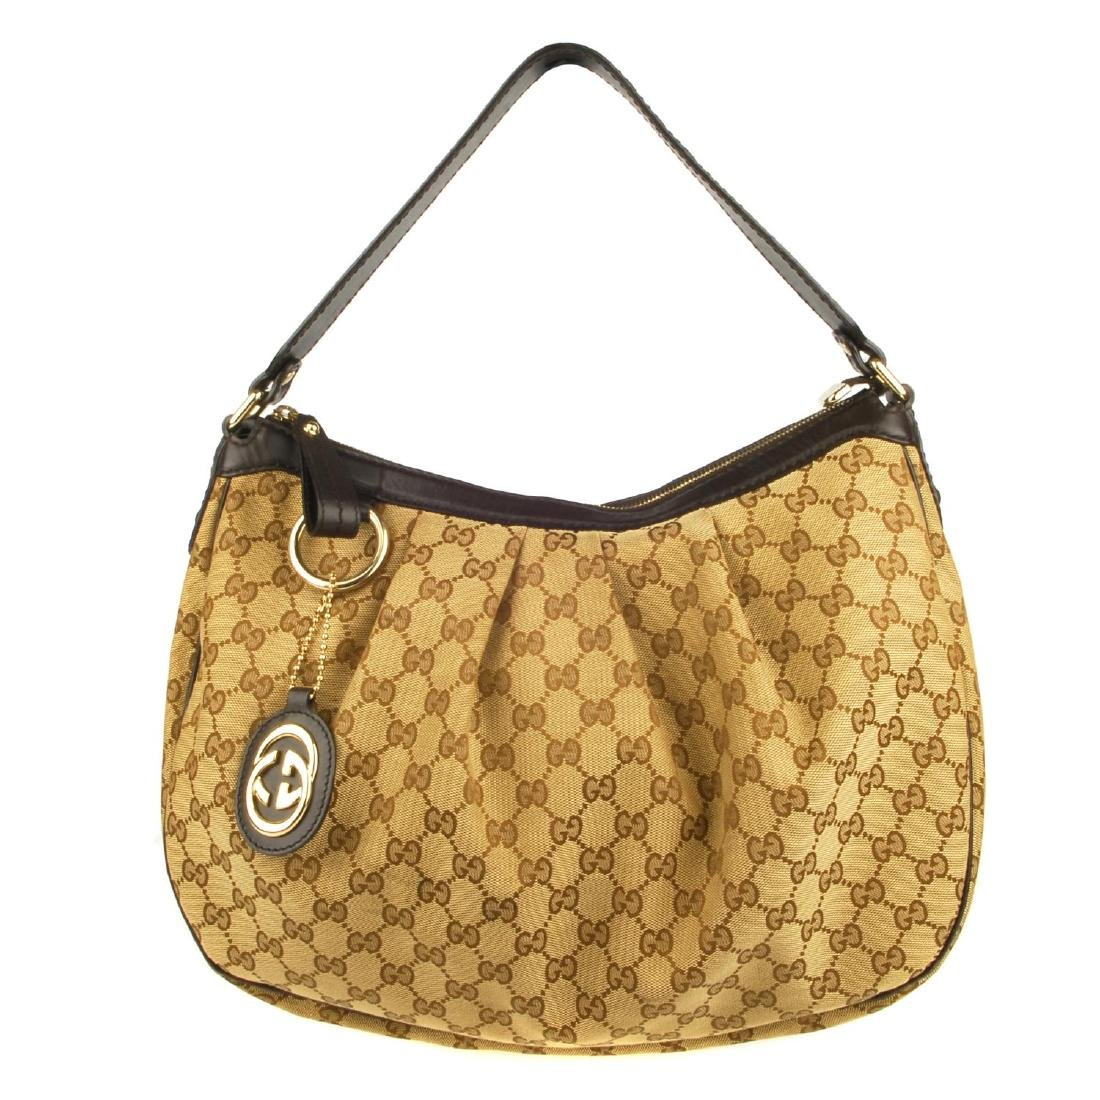 GUCCI - a handbag. Crafted from maker's classic beige